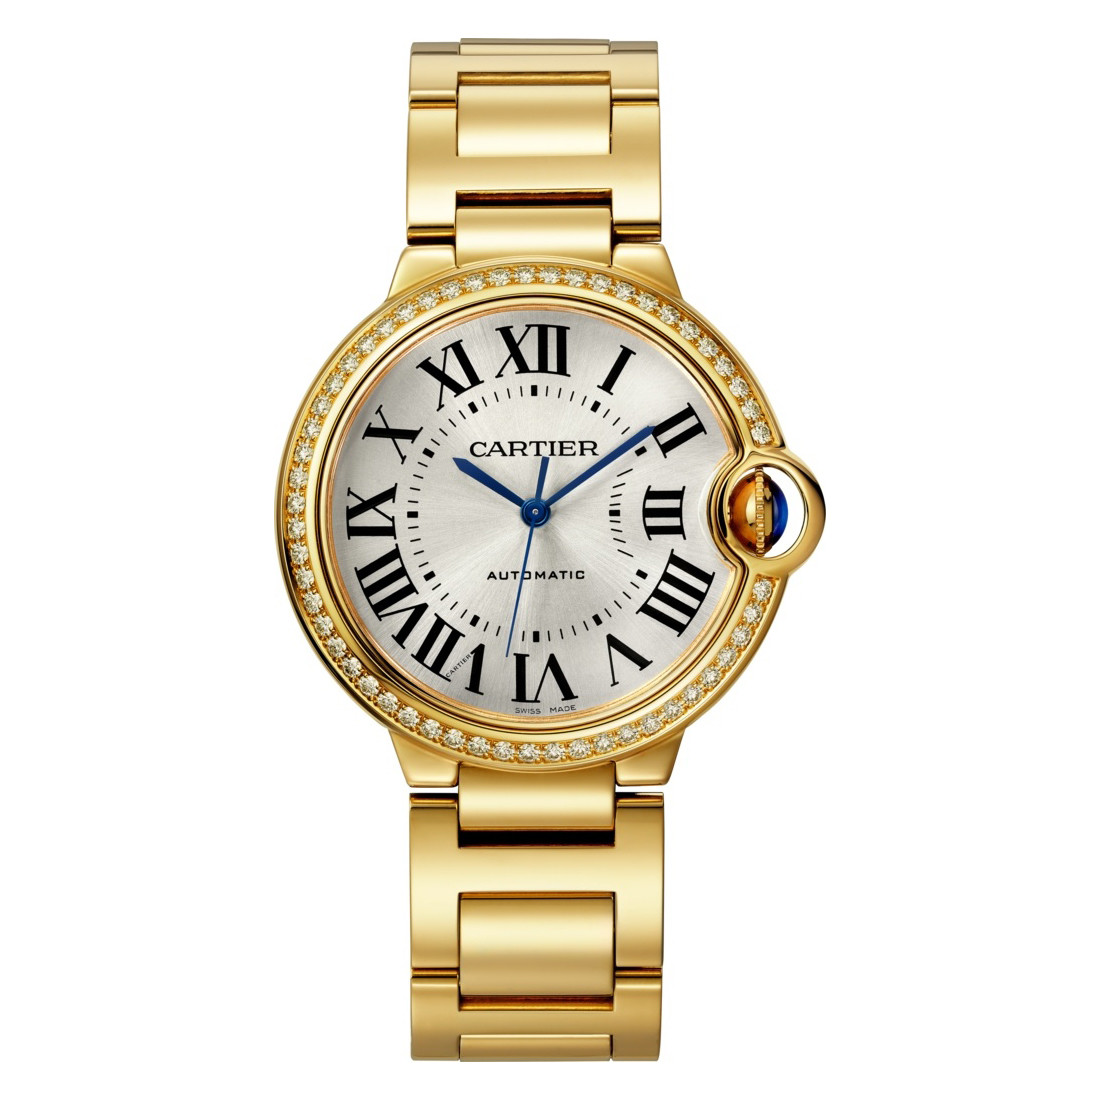 Ballon Bleu 36mm Yellow Gold & Diamonds (WJBB0043)